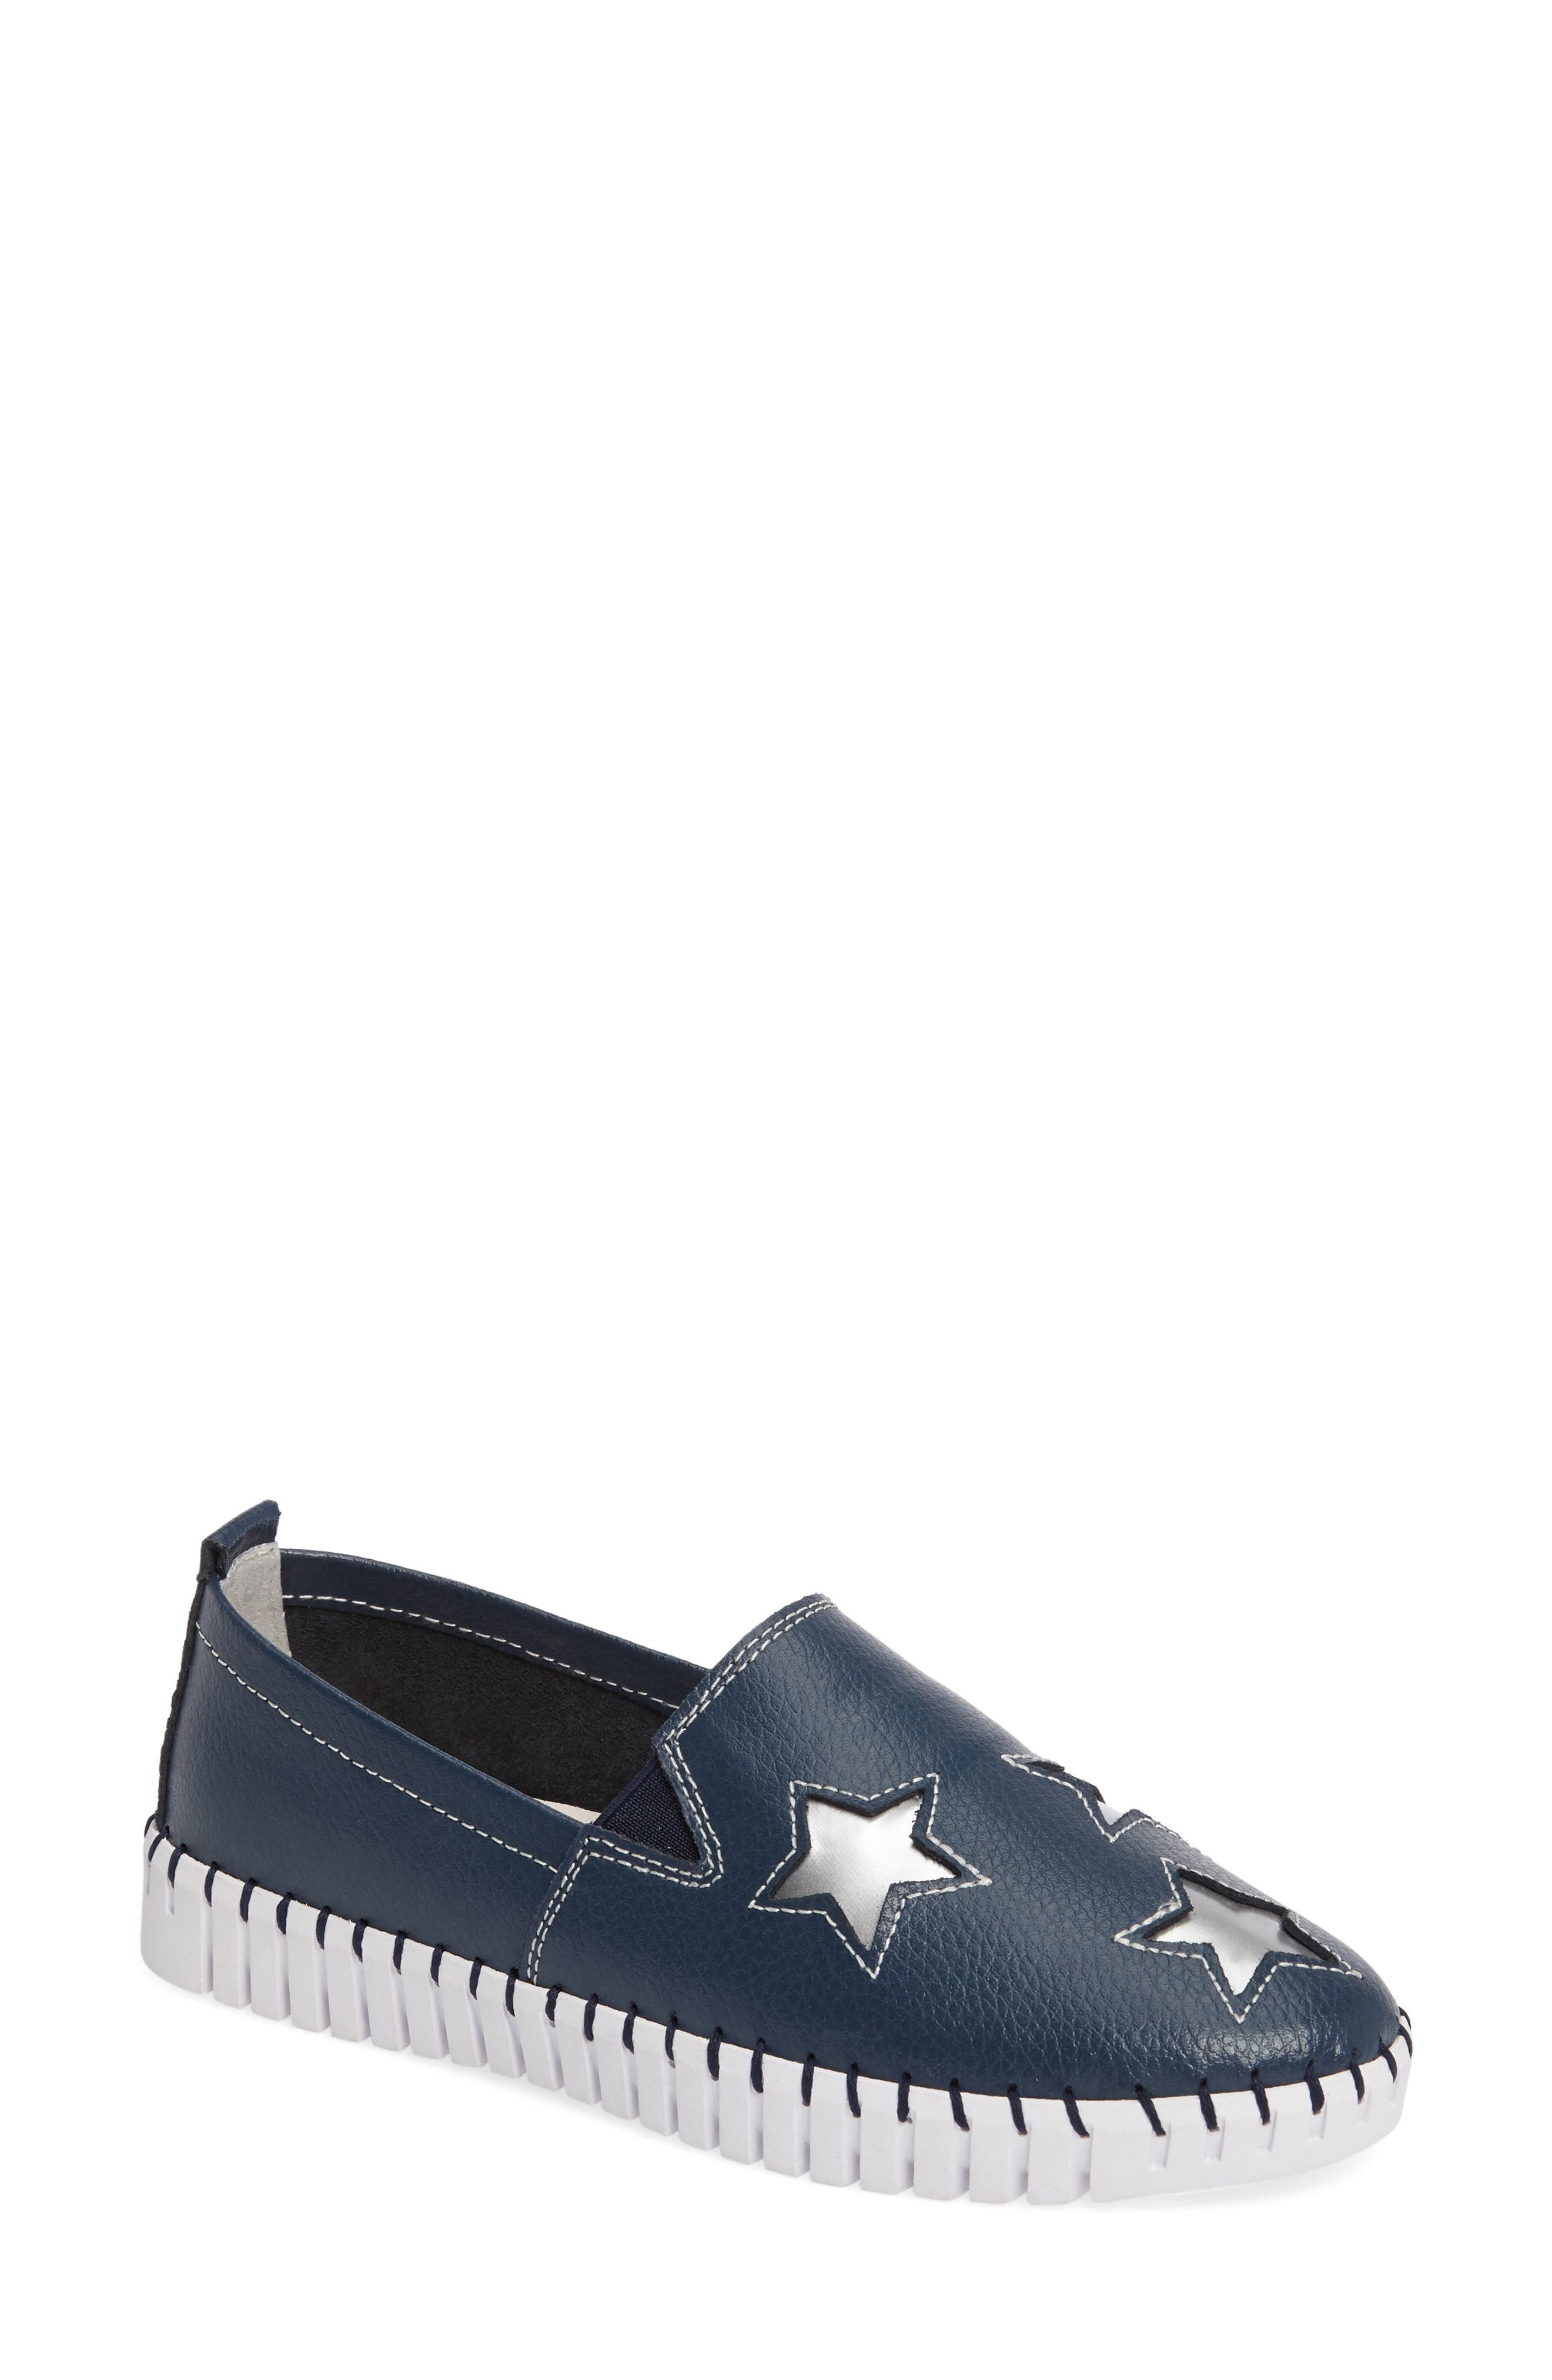 TW37 Slip-On Sneaker,                             Main thumbnail 1, color,                             NAVY LEATHER